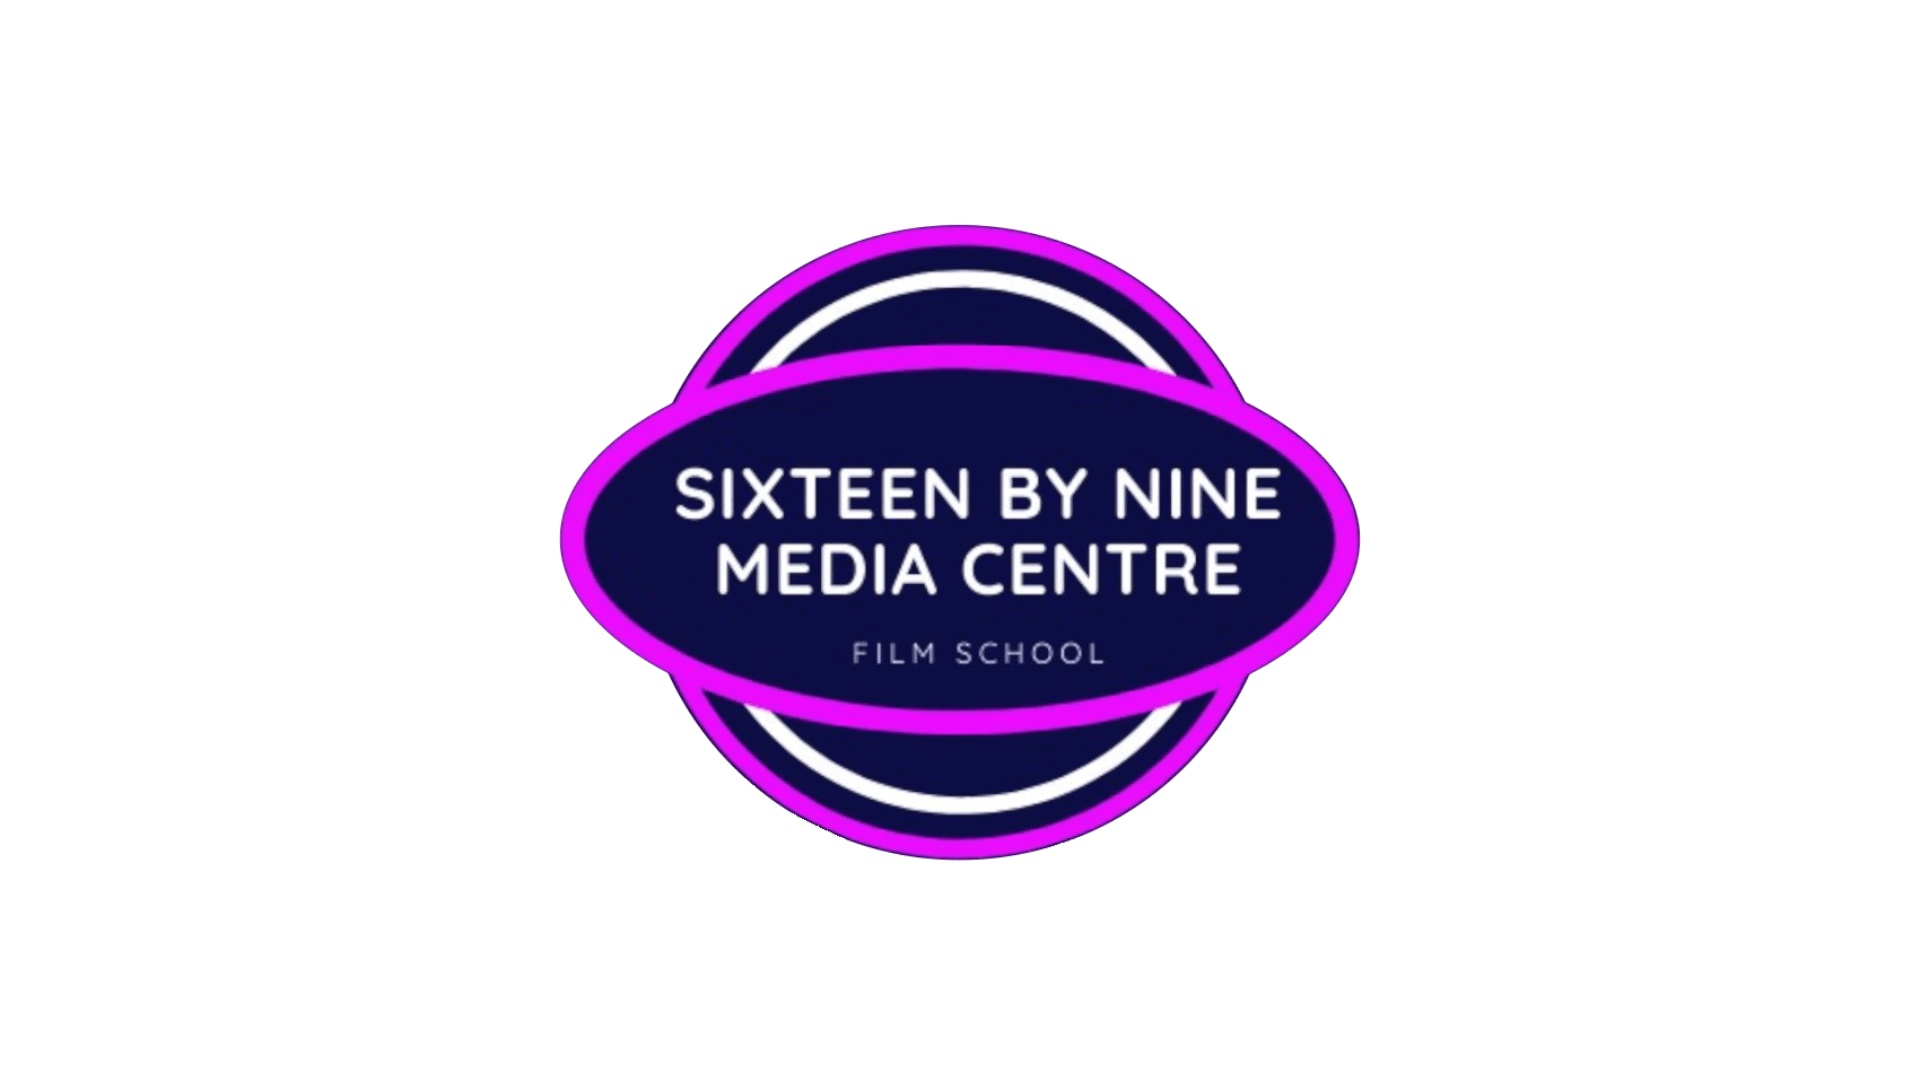 Sixteen By Nine Media Centre